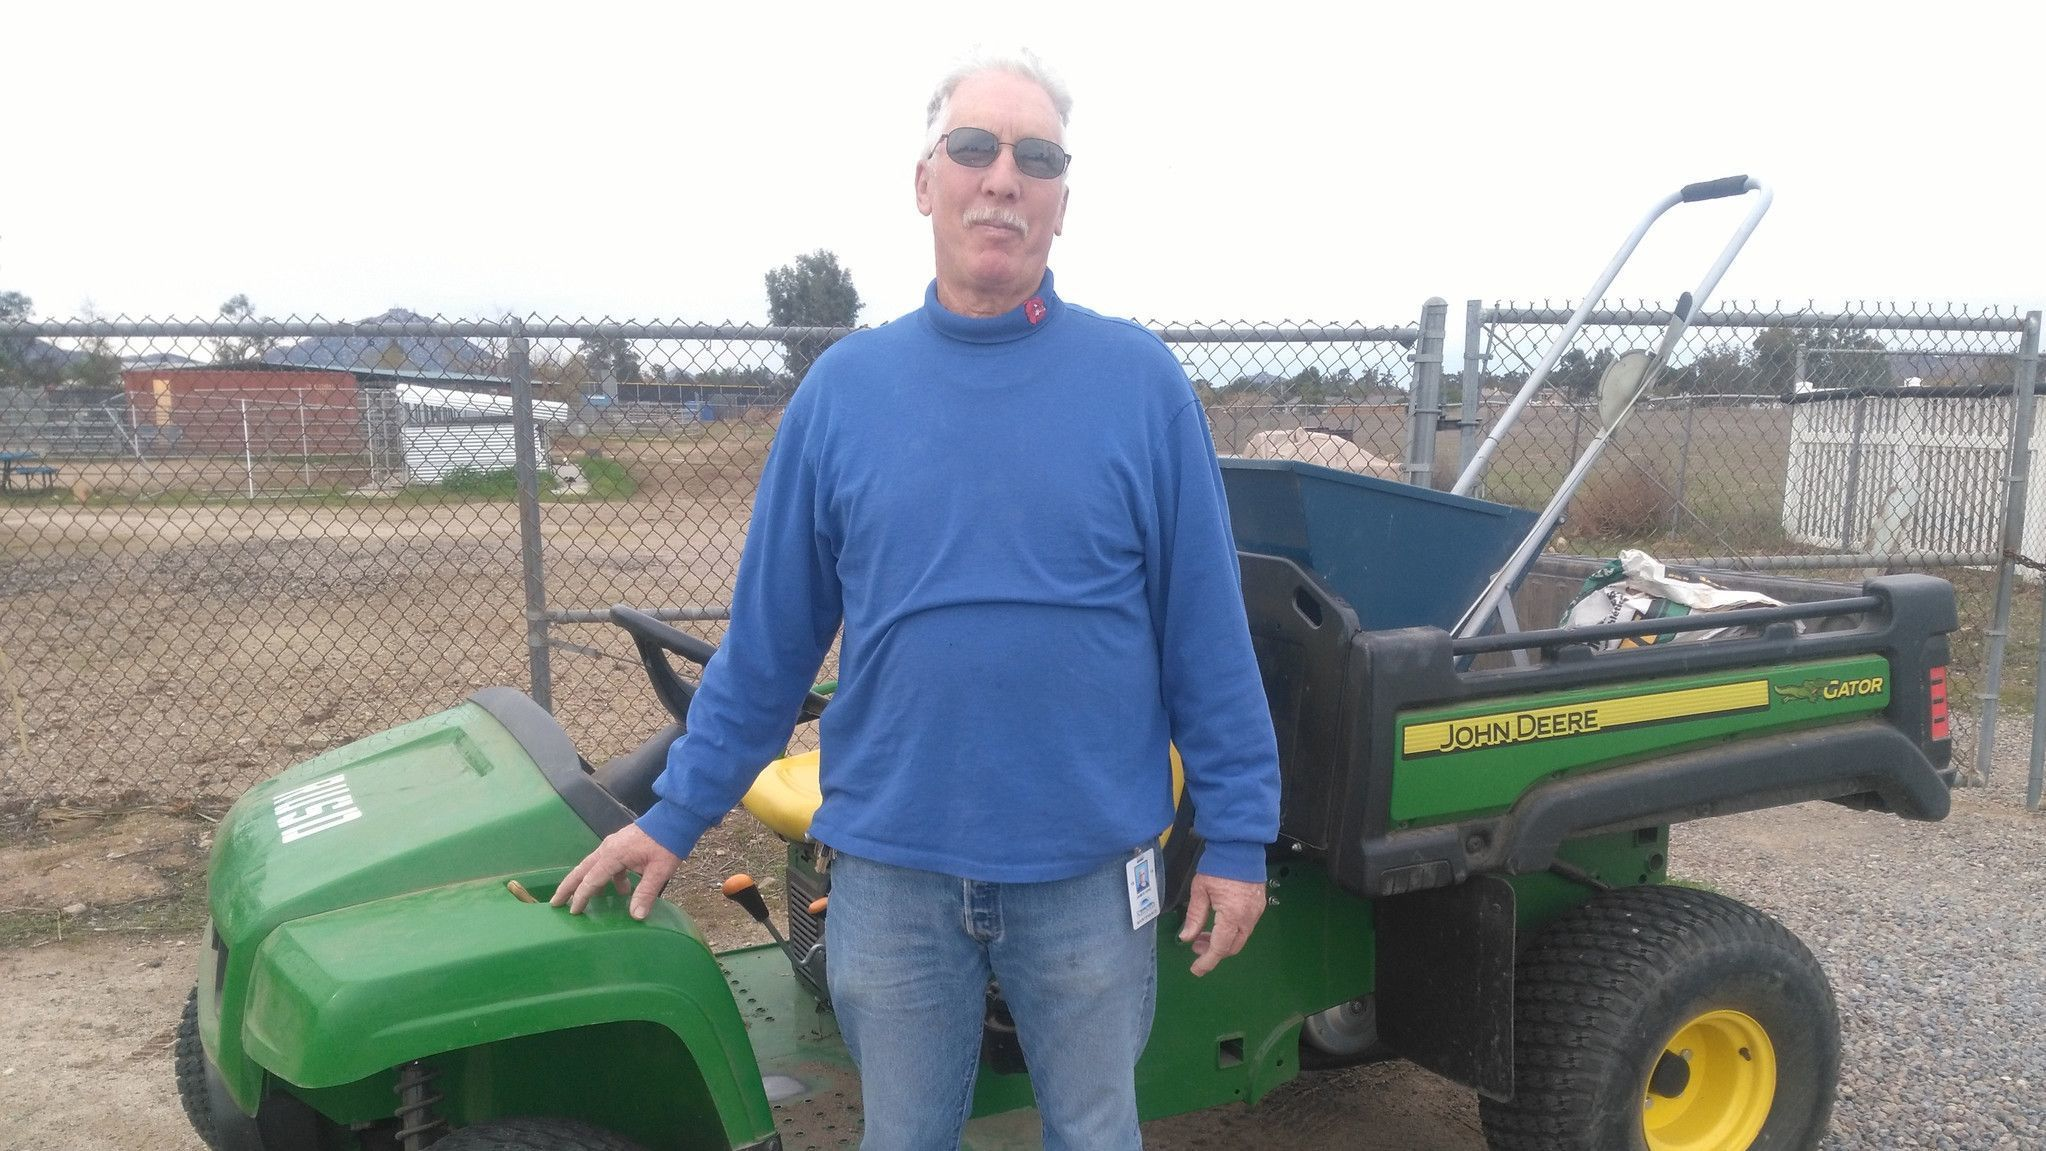 Jim King recently retired as groundskeeper II for Ramona Unified School District but continues to serve as president of a local chapter of California School Employees Association.